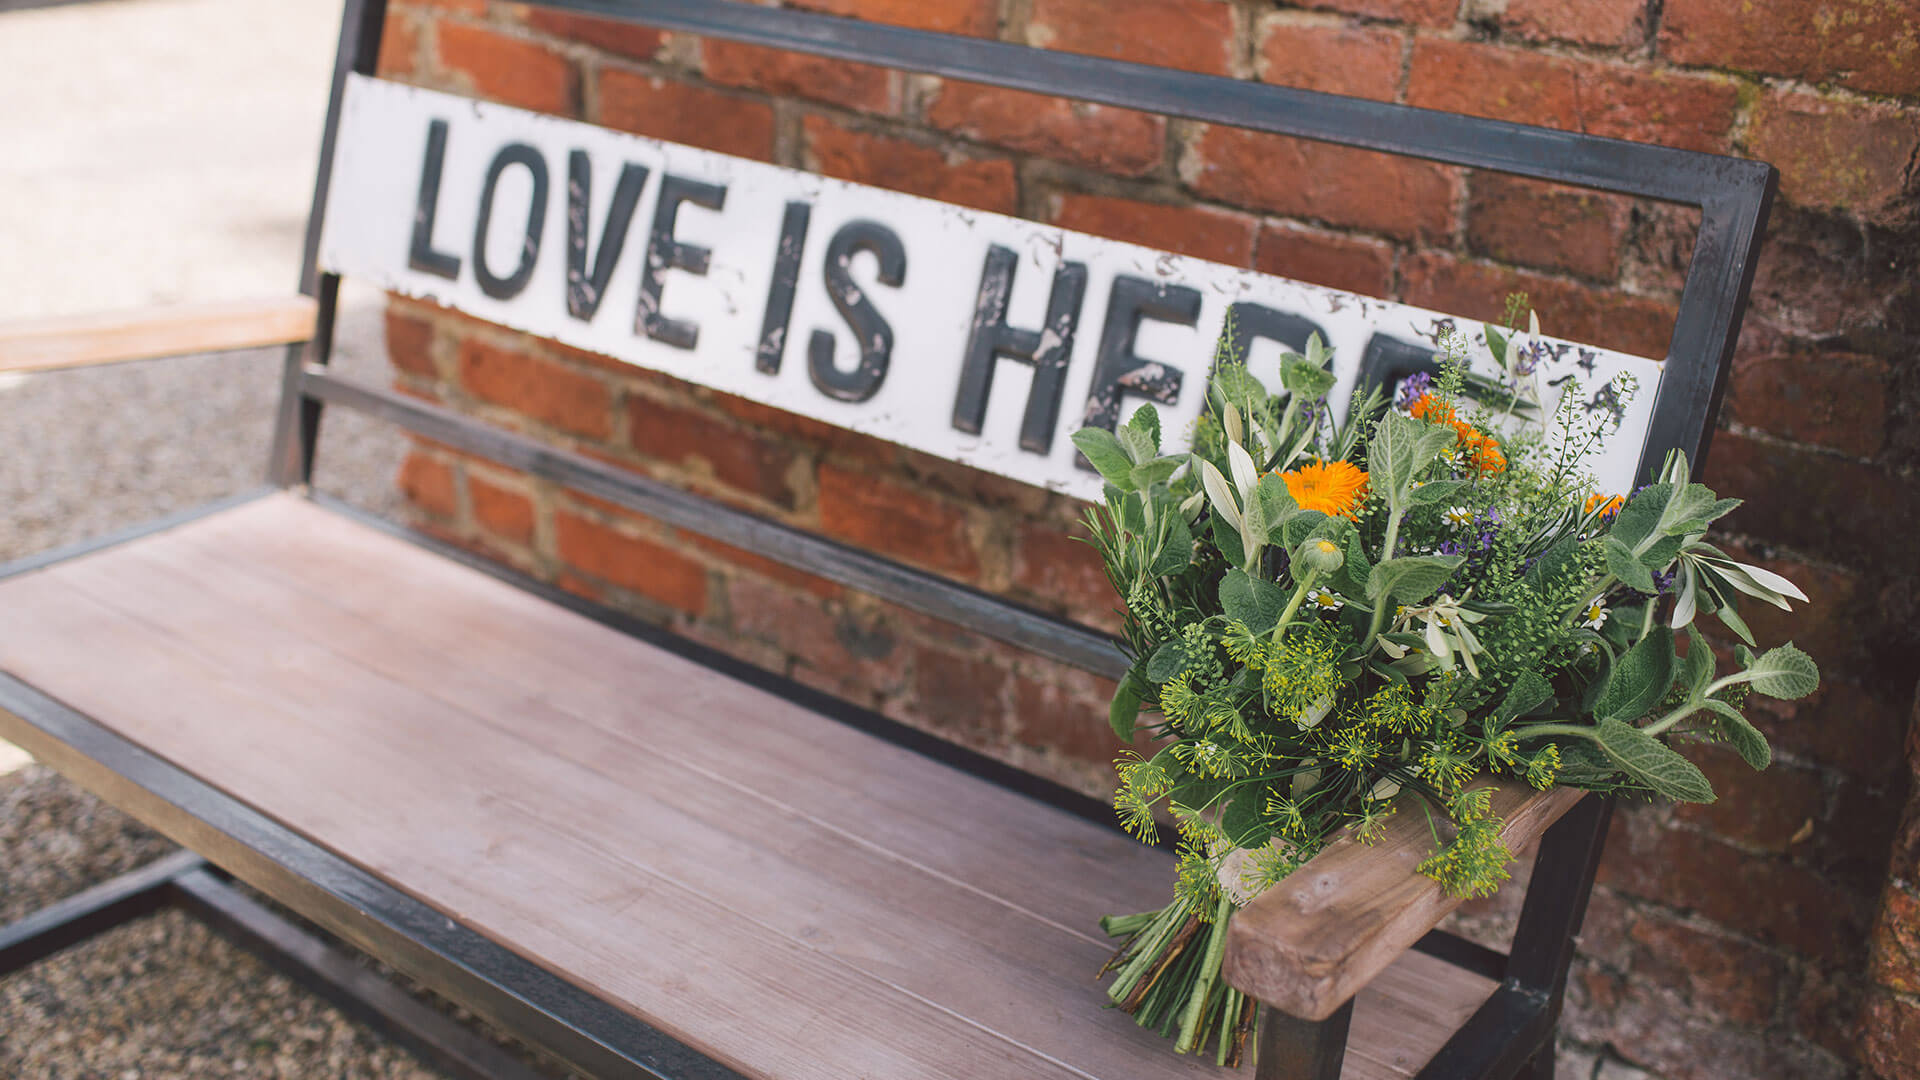 Pretty summer wedding flowers or green and yellow are placed on a bench that reads love is here